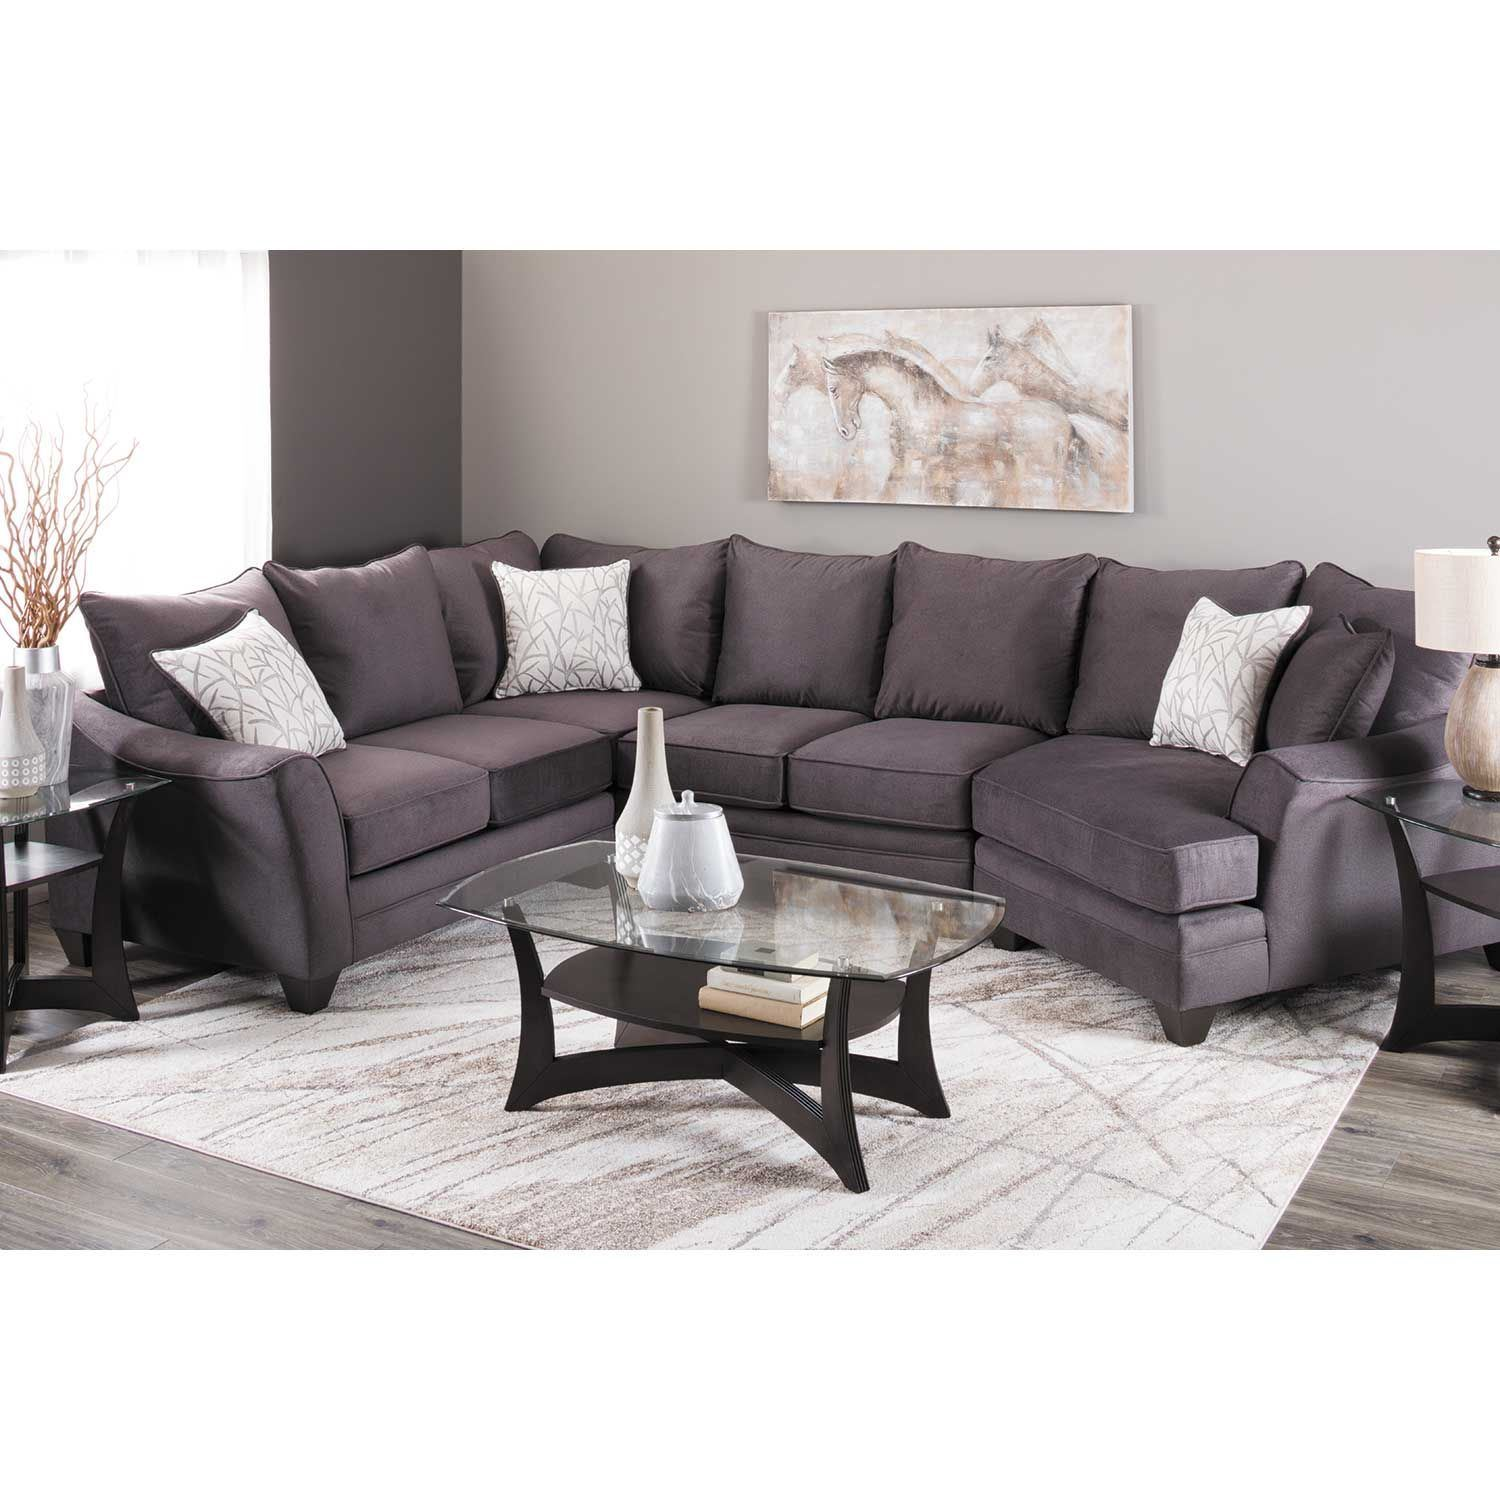 Picture of Flannel Seal 3 Piece Sectional with LAF Cuddler